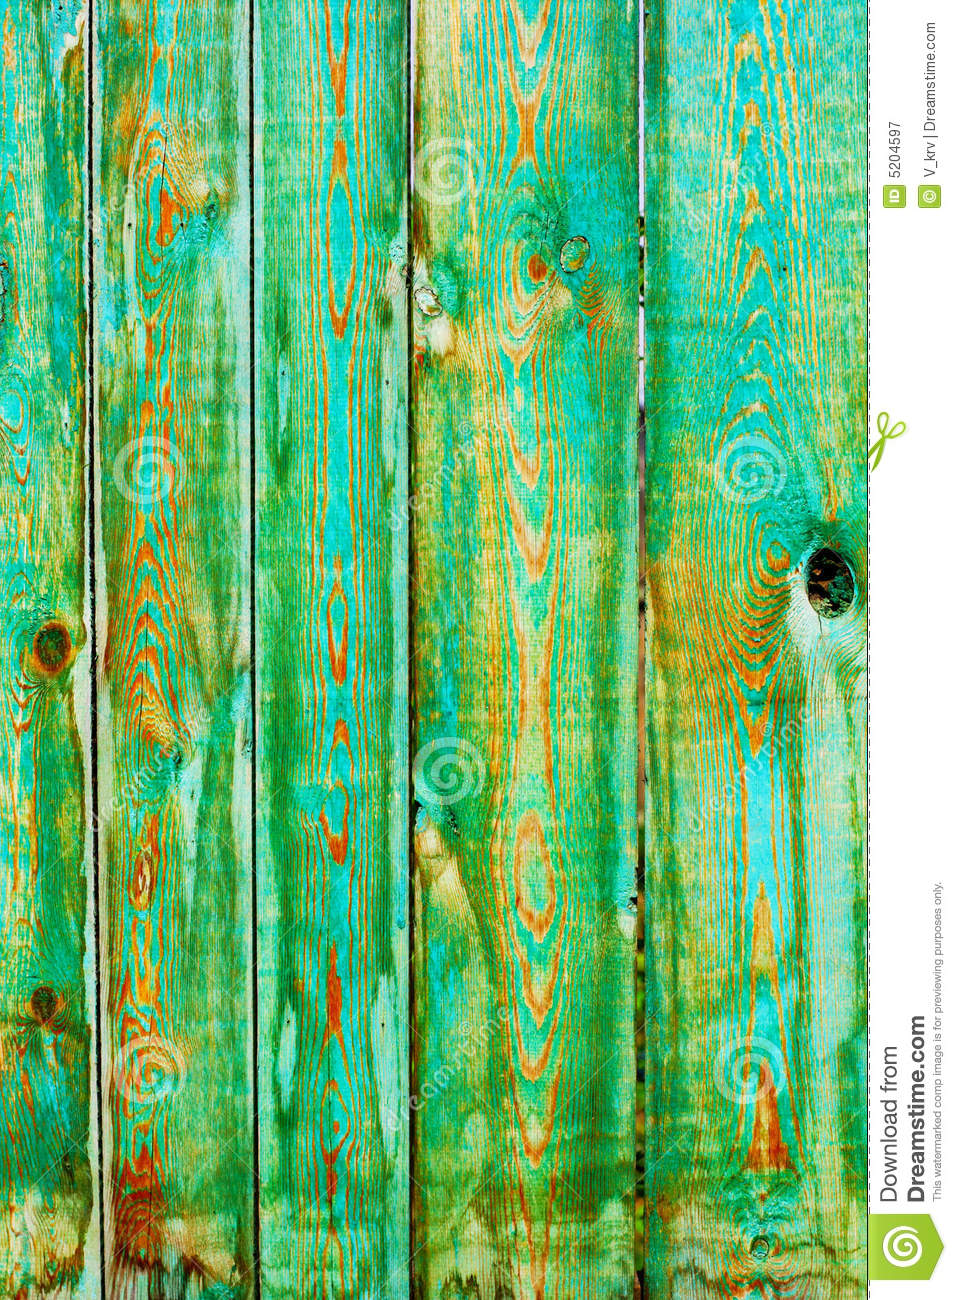 Wooden painted texture. Vertical frame.